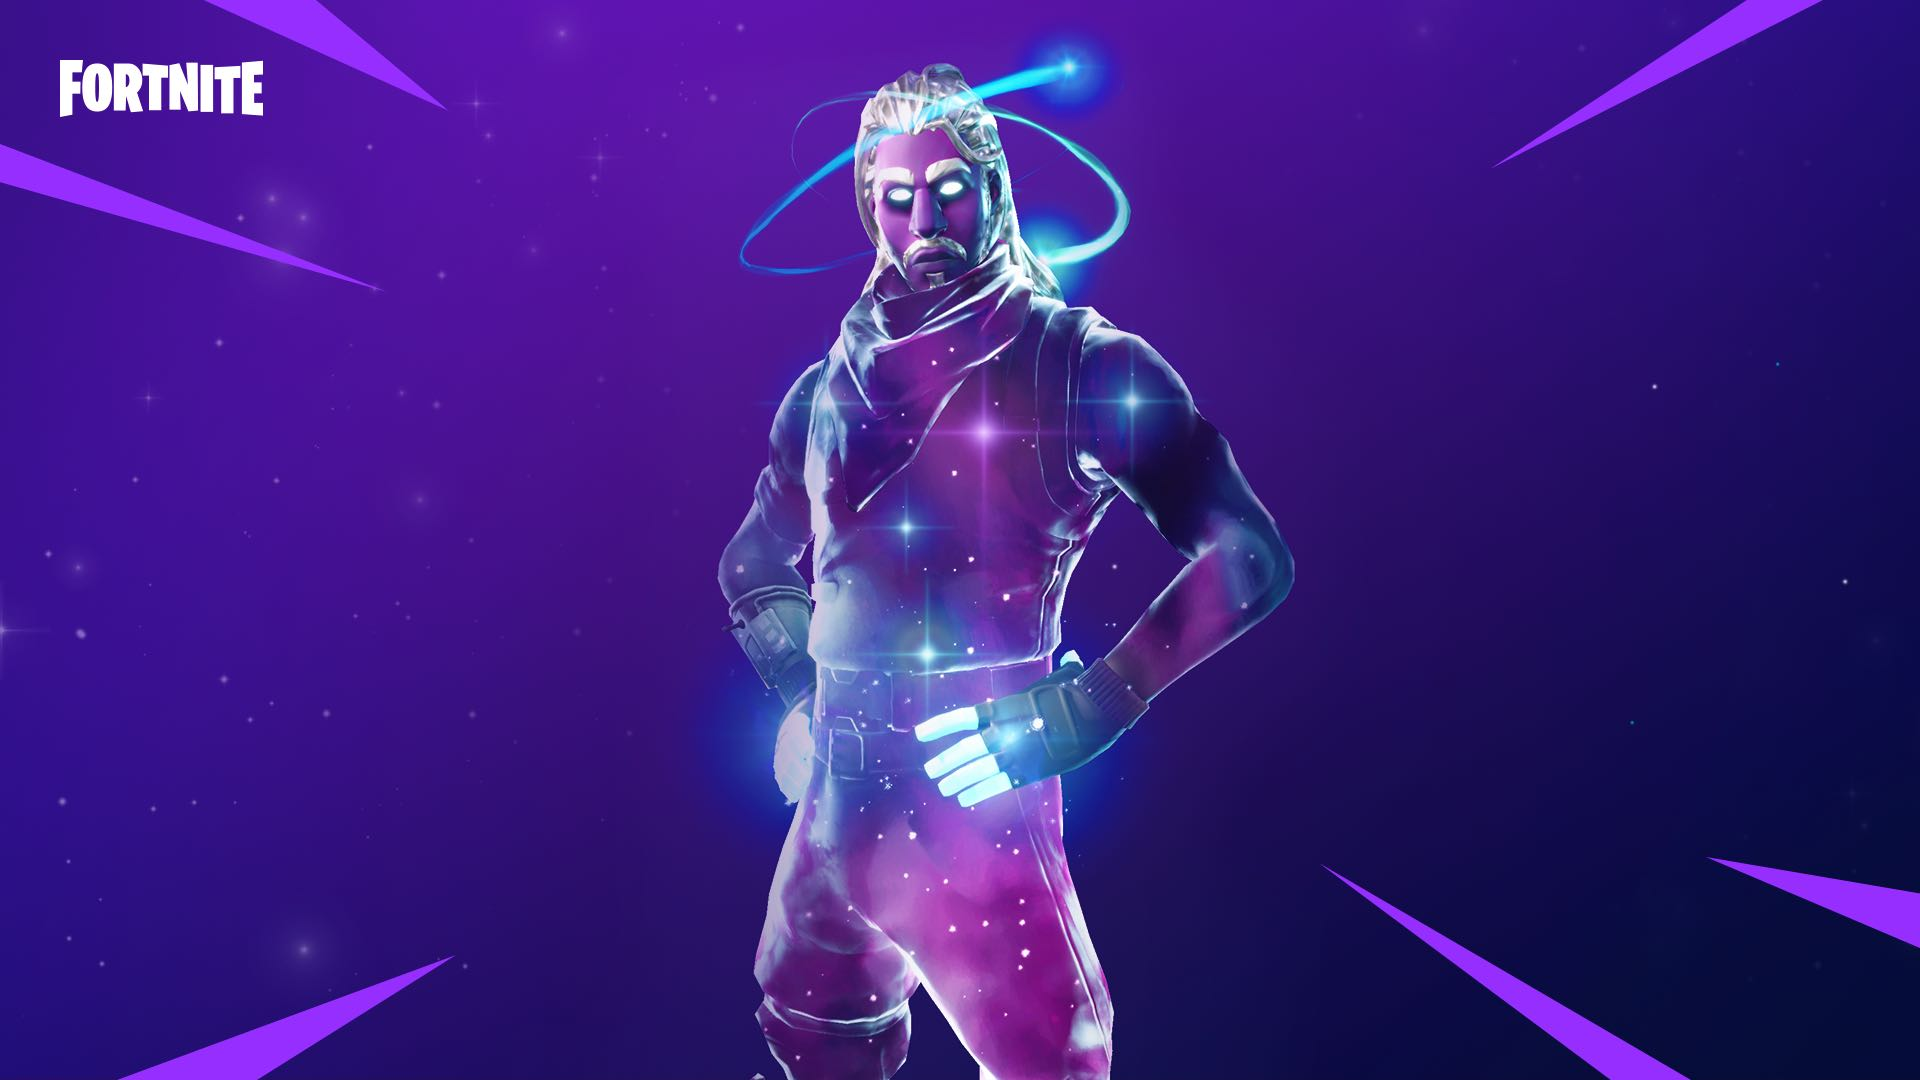 Fortnite-Galaxy outfit_squashed